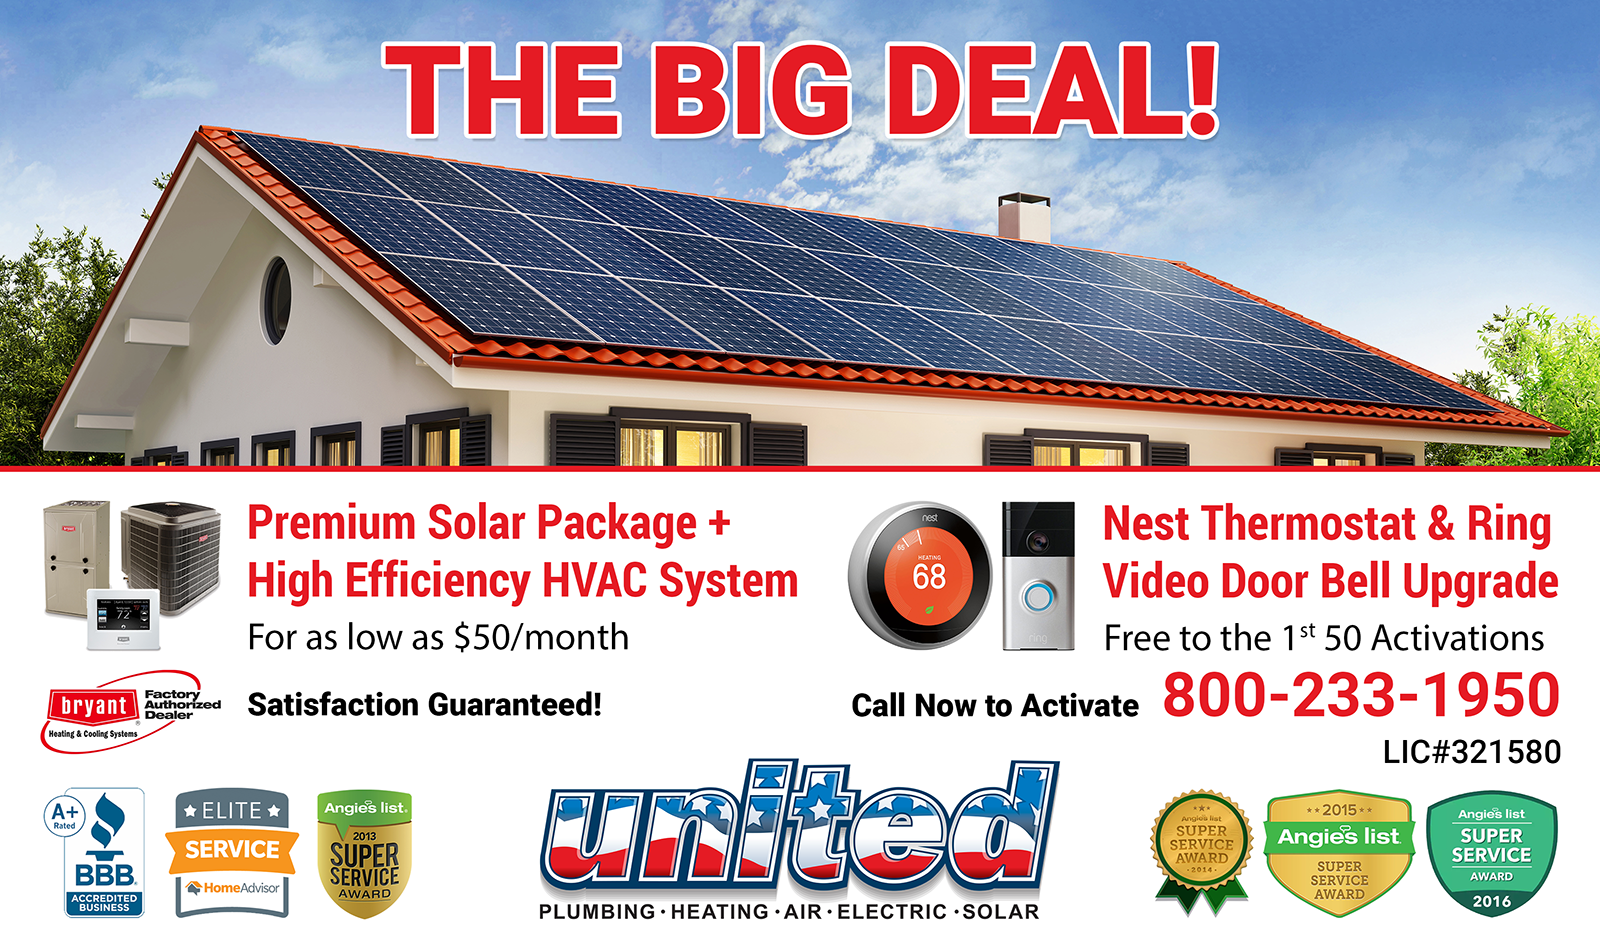 Don't miss THE BIG DEAL from United Plumbing Heating Air